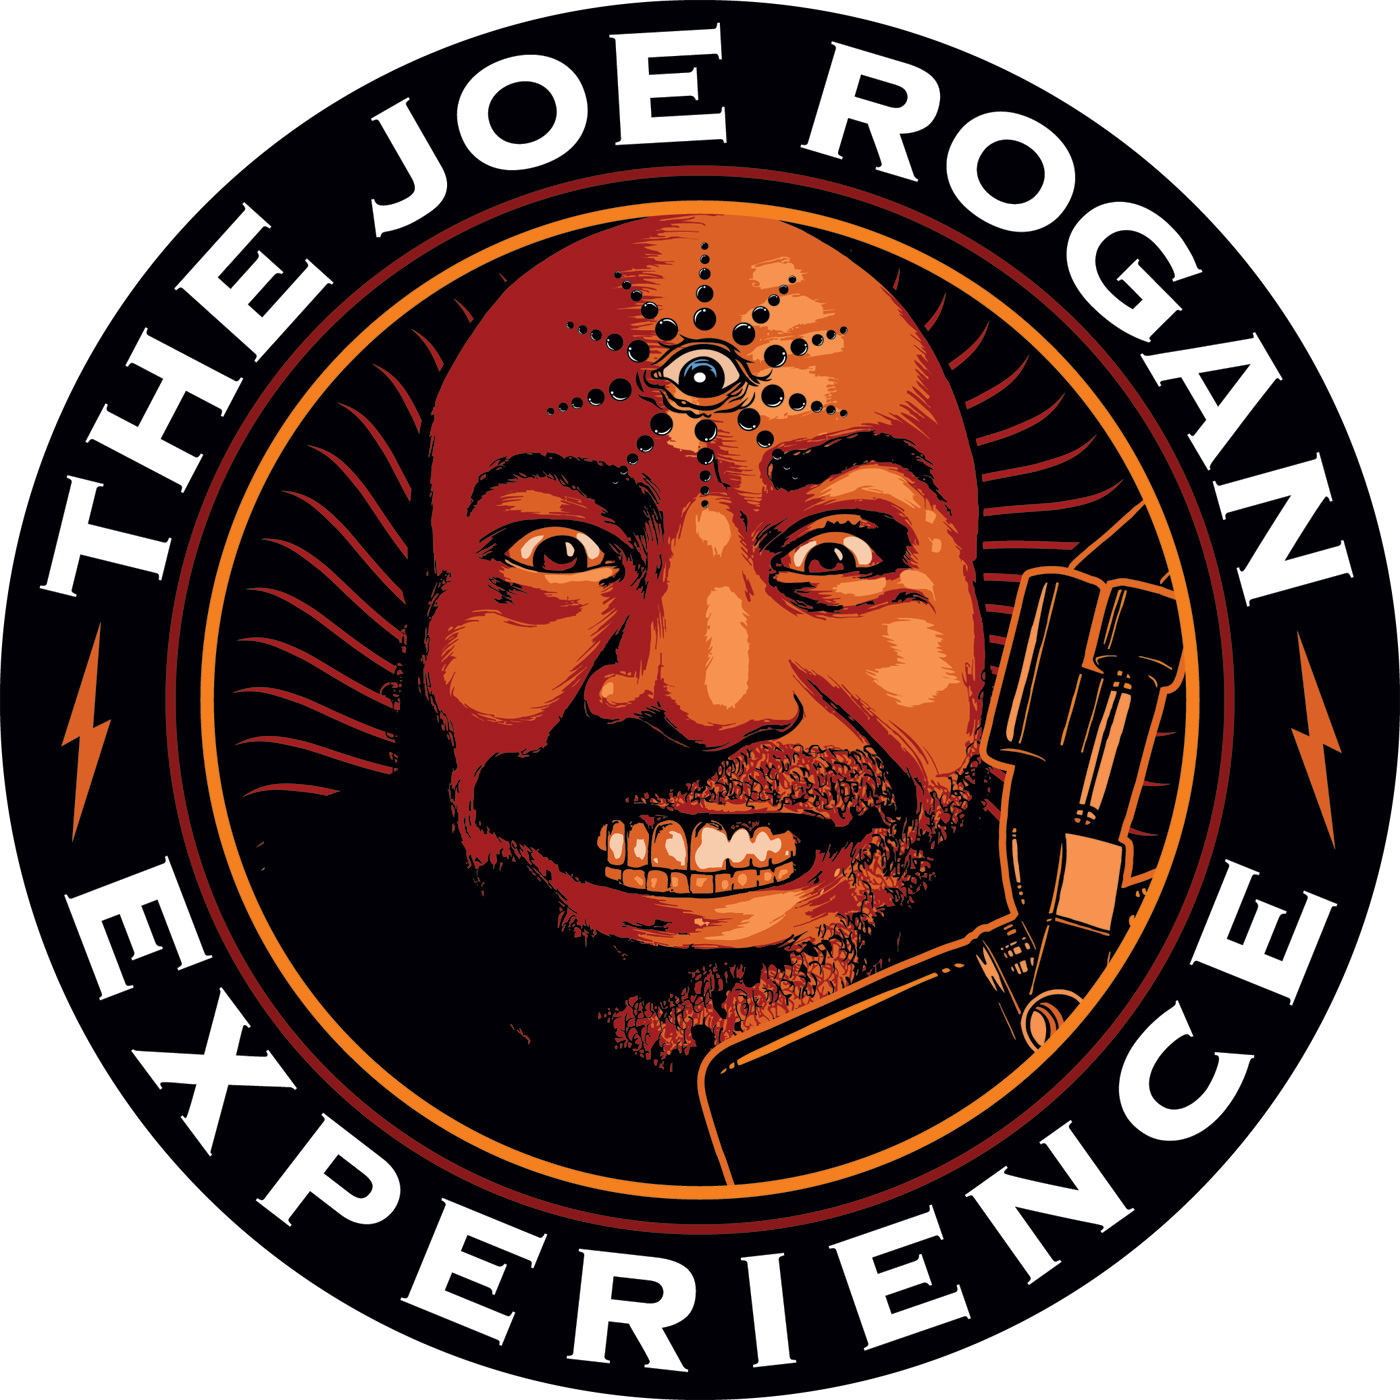 podcast thumbnail for 'The Joe Rogan Experience'